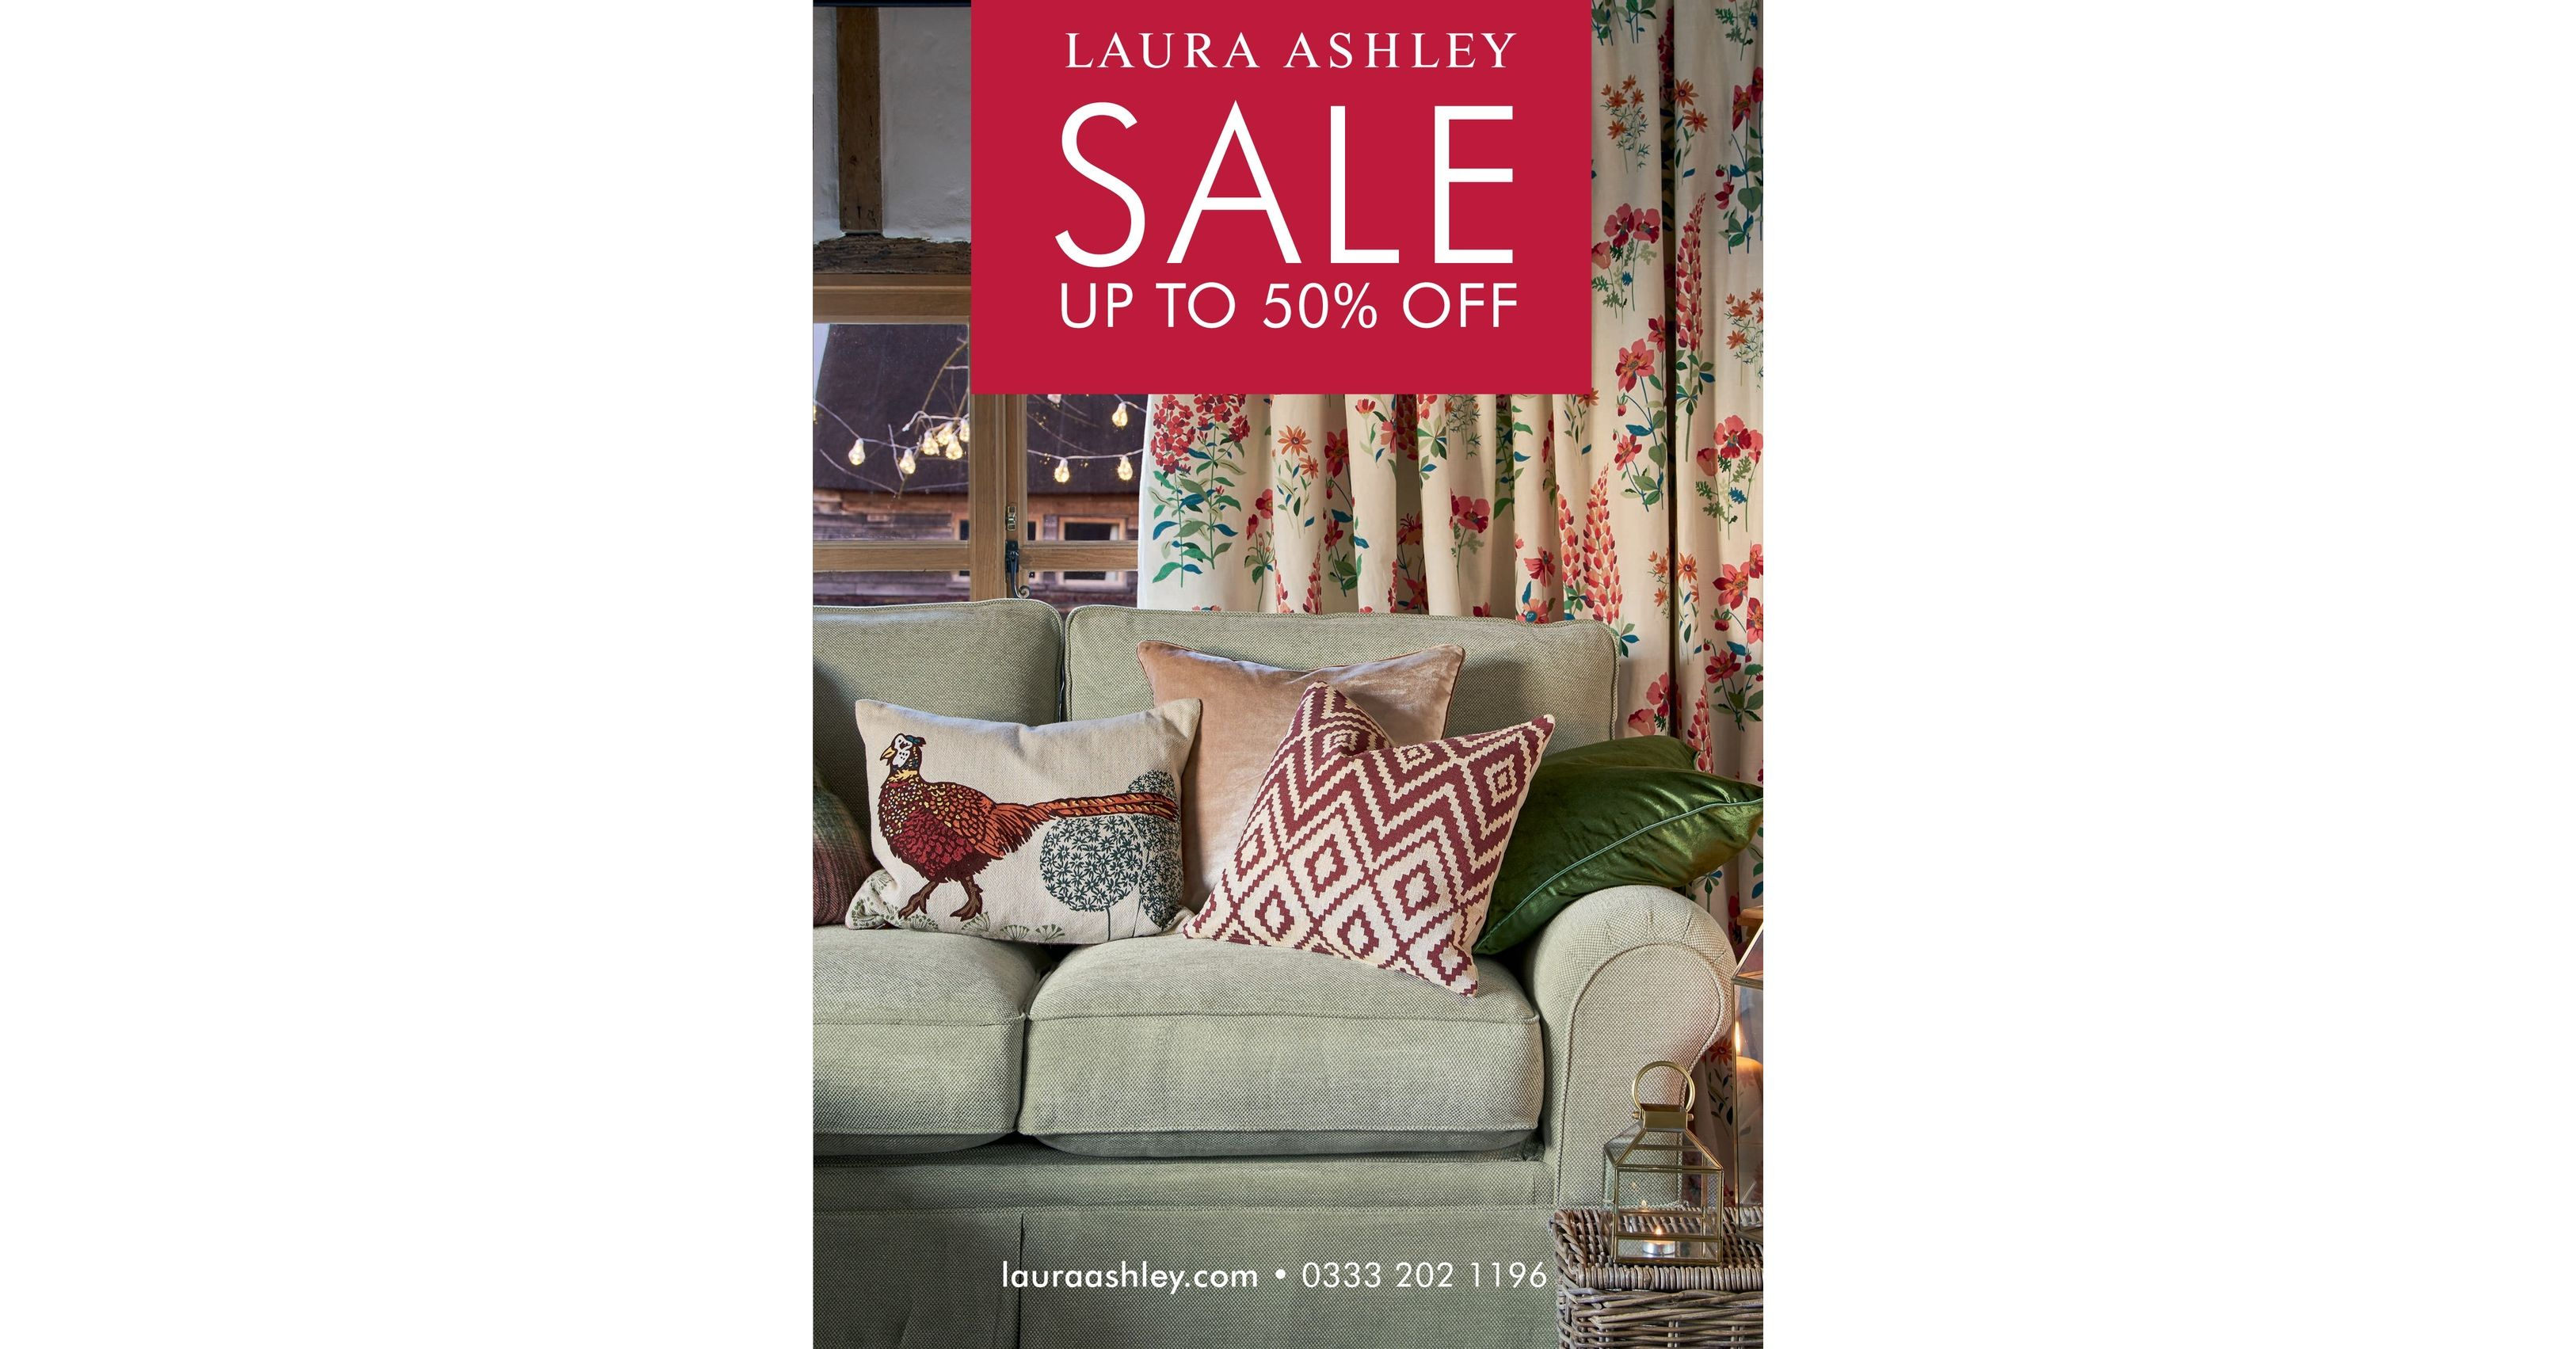 Find the best deals at the lowest prices with our Laura Ashley promo codes and deals.